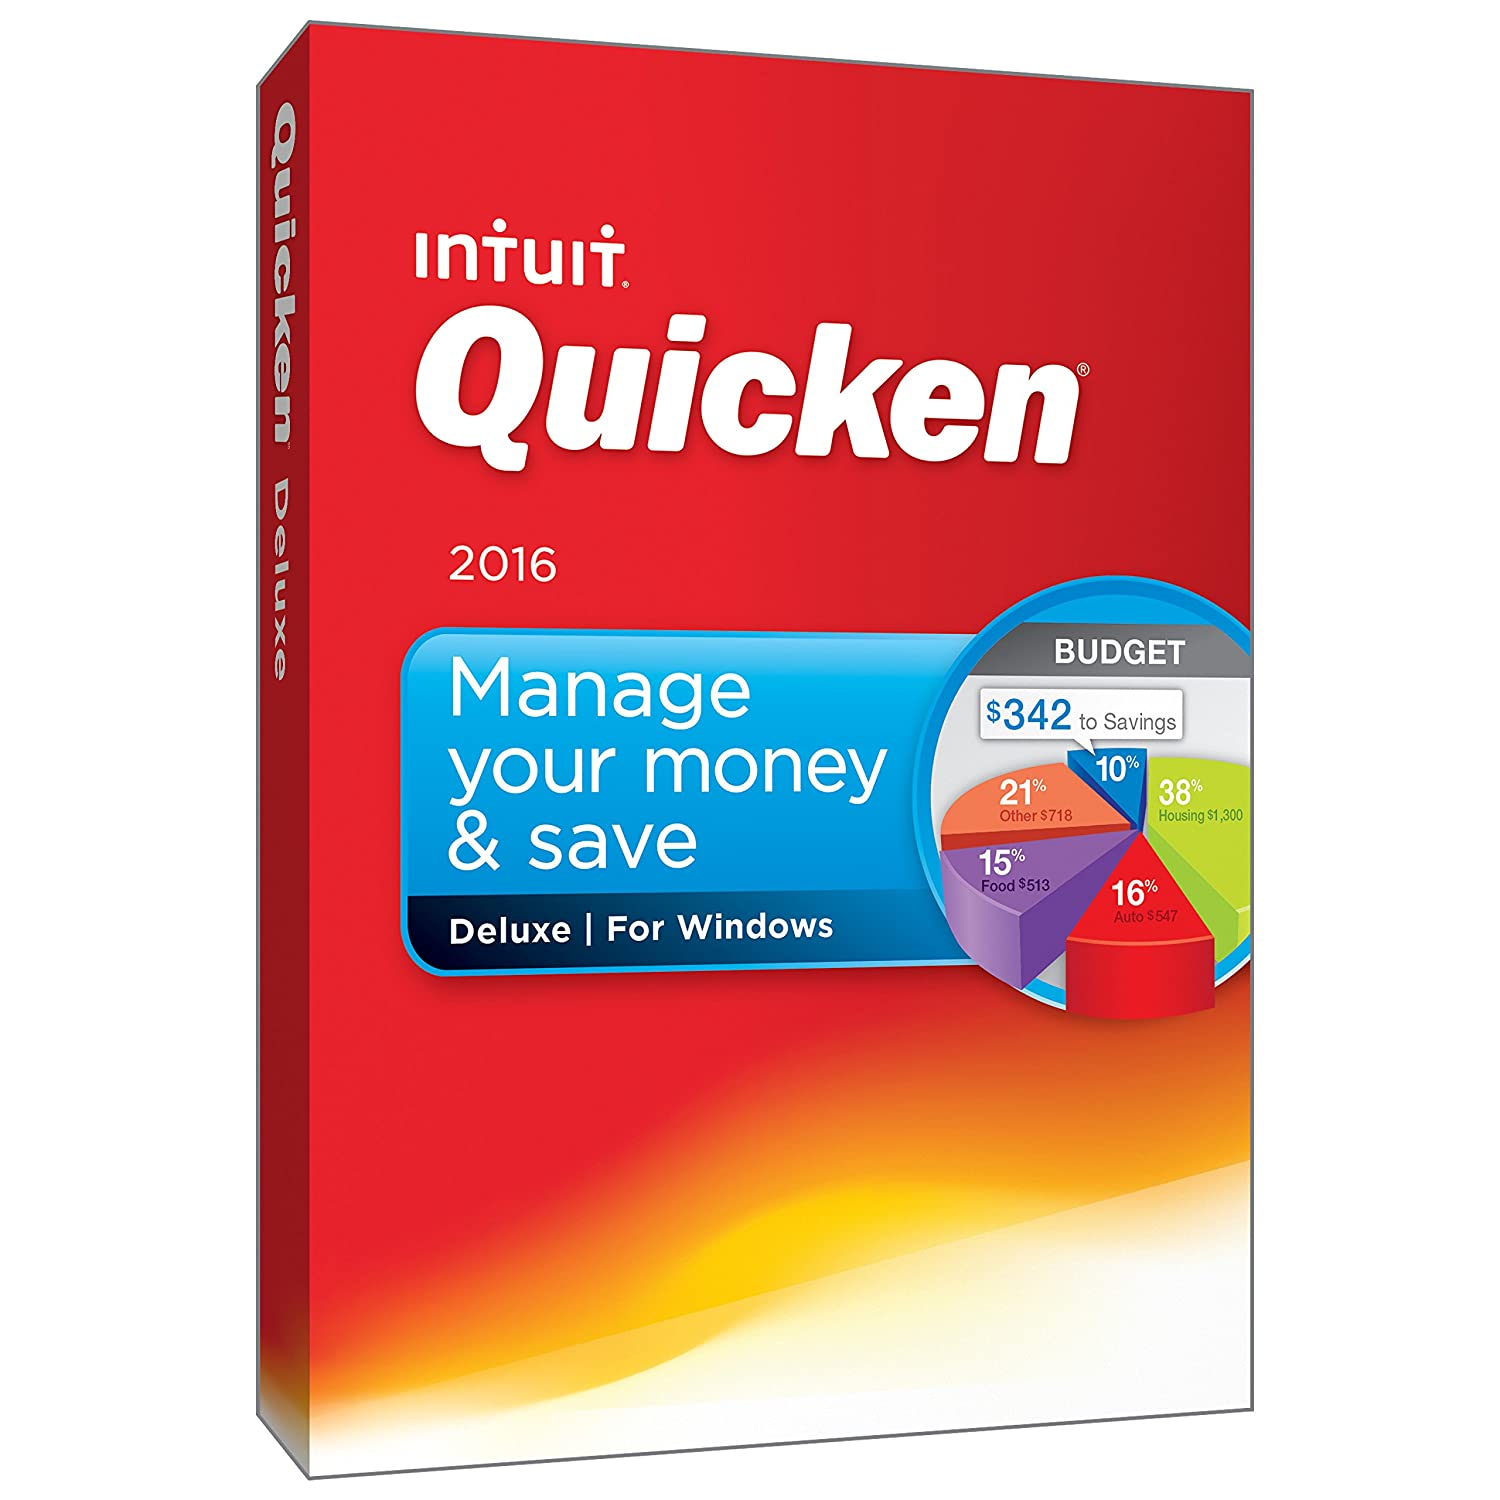 Amazon.com: Quicken Deluxe 2016 Personal Finance & Budgeting Software [Old  Version]: Software